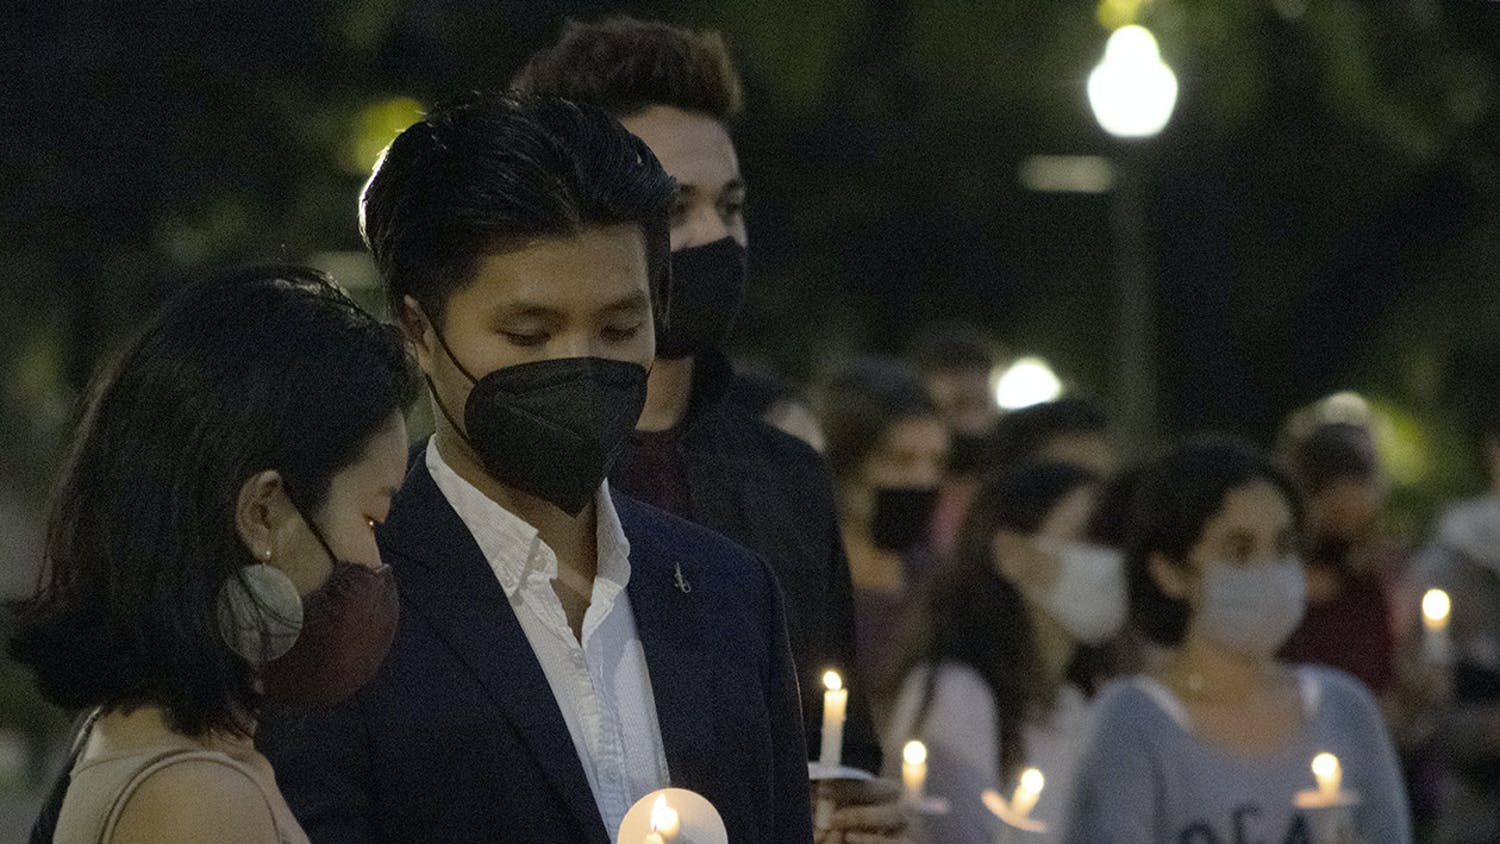 Two people light each other's candles during an event on Sunday, Feb. 14, 2021 to honor those killed during a school shooting in Parkland, Florida three years ago.